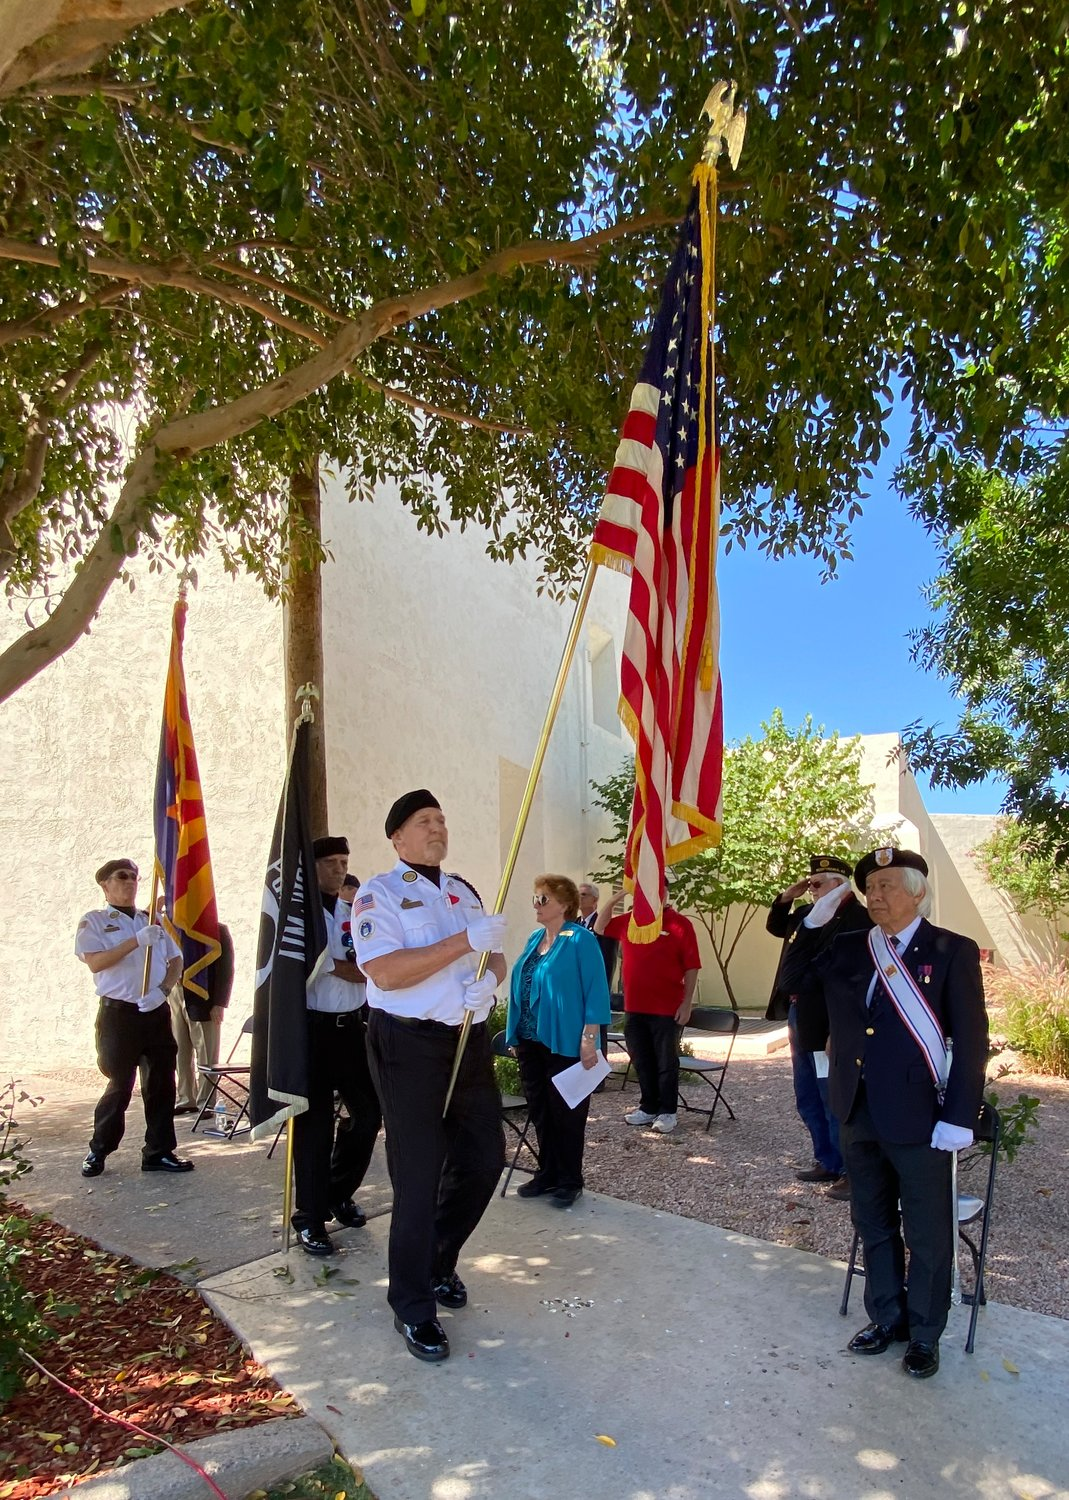 A view of the Memorial Day service at Scottsdale Civic Center Park.